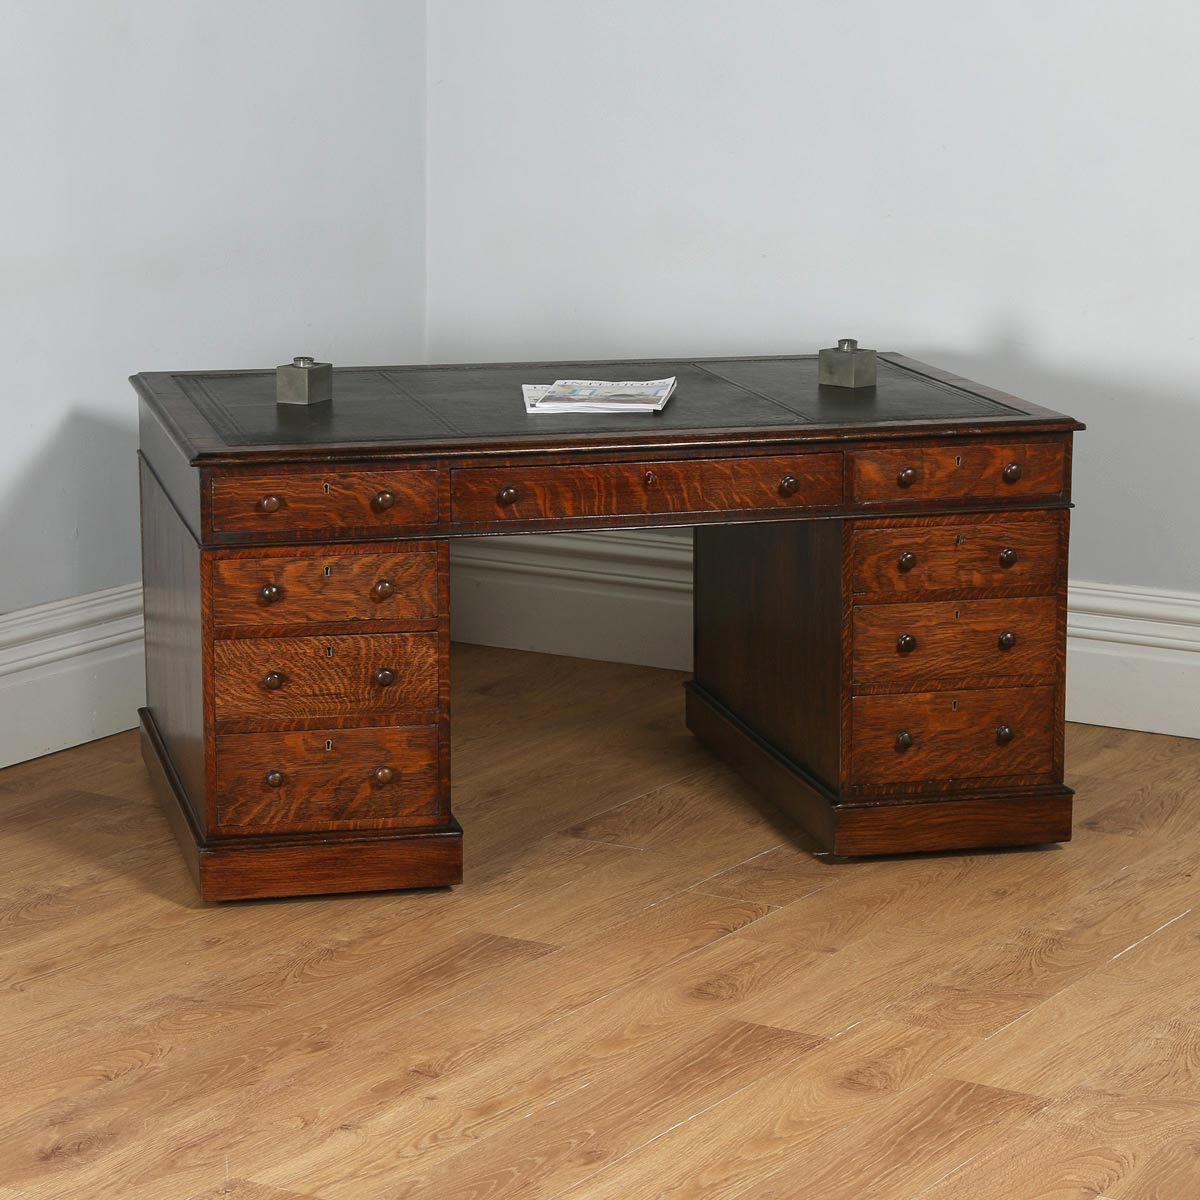 antique mahogany office chair electric reclining victorian furniture gothic desks english oak leather 5ft partners pedestal desk circa